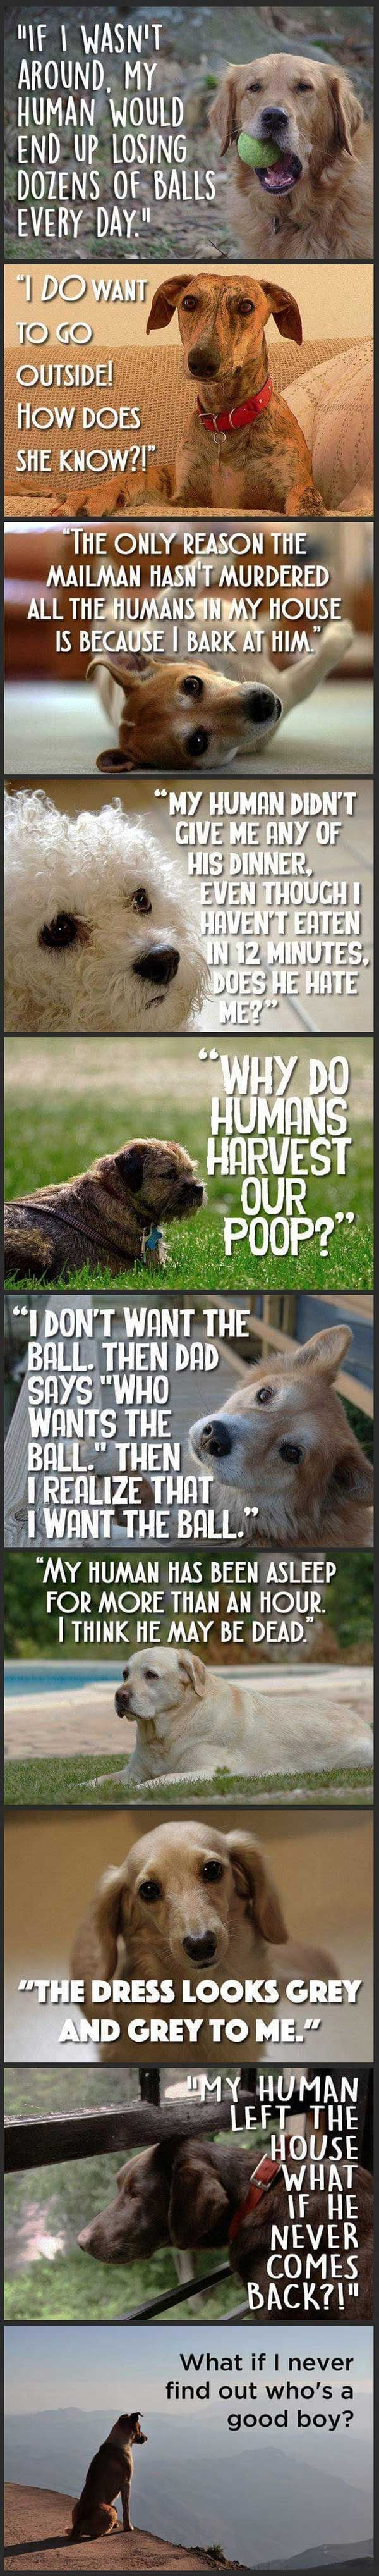 Just Dog Thoughts. #Animals #Dogs #Inspiring #Thoughts |